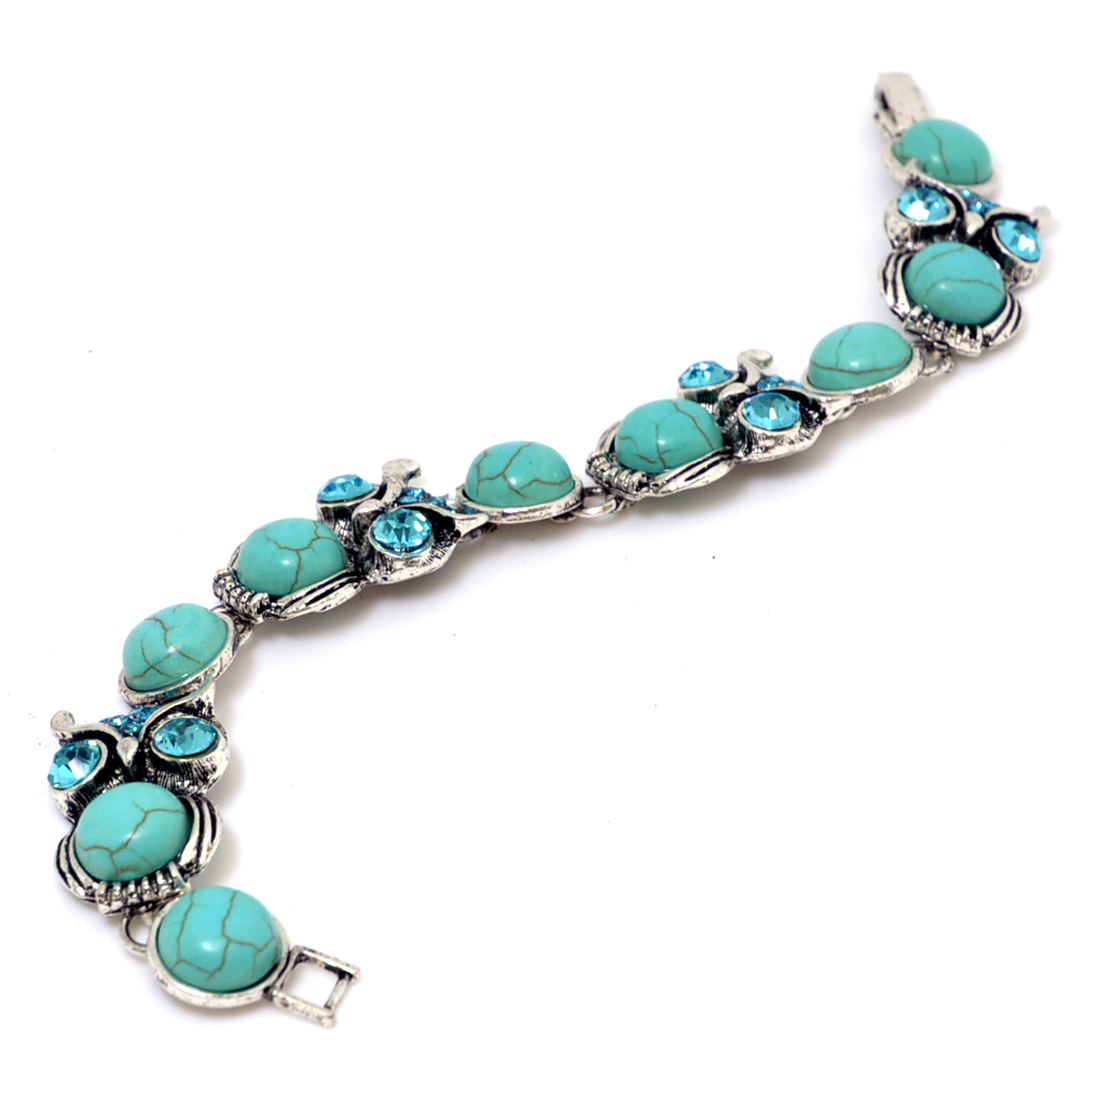 Oval-Shaped Vintage-Inspired Turquoise Bracelet